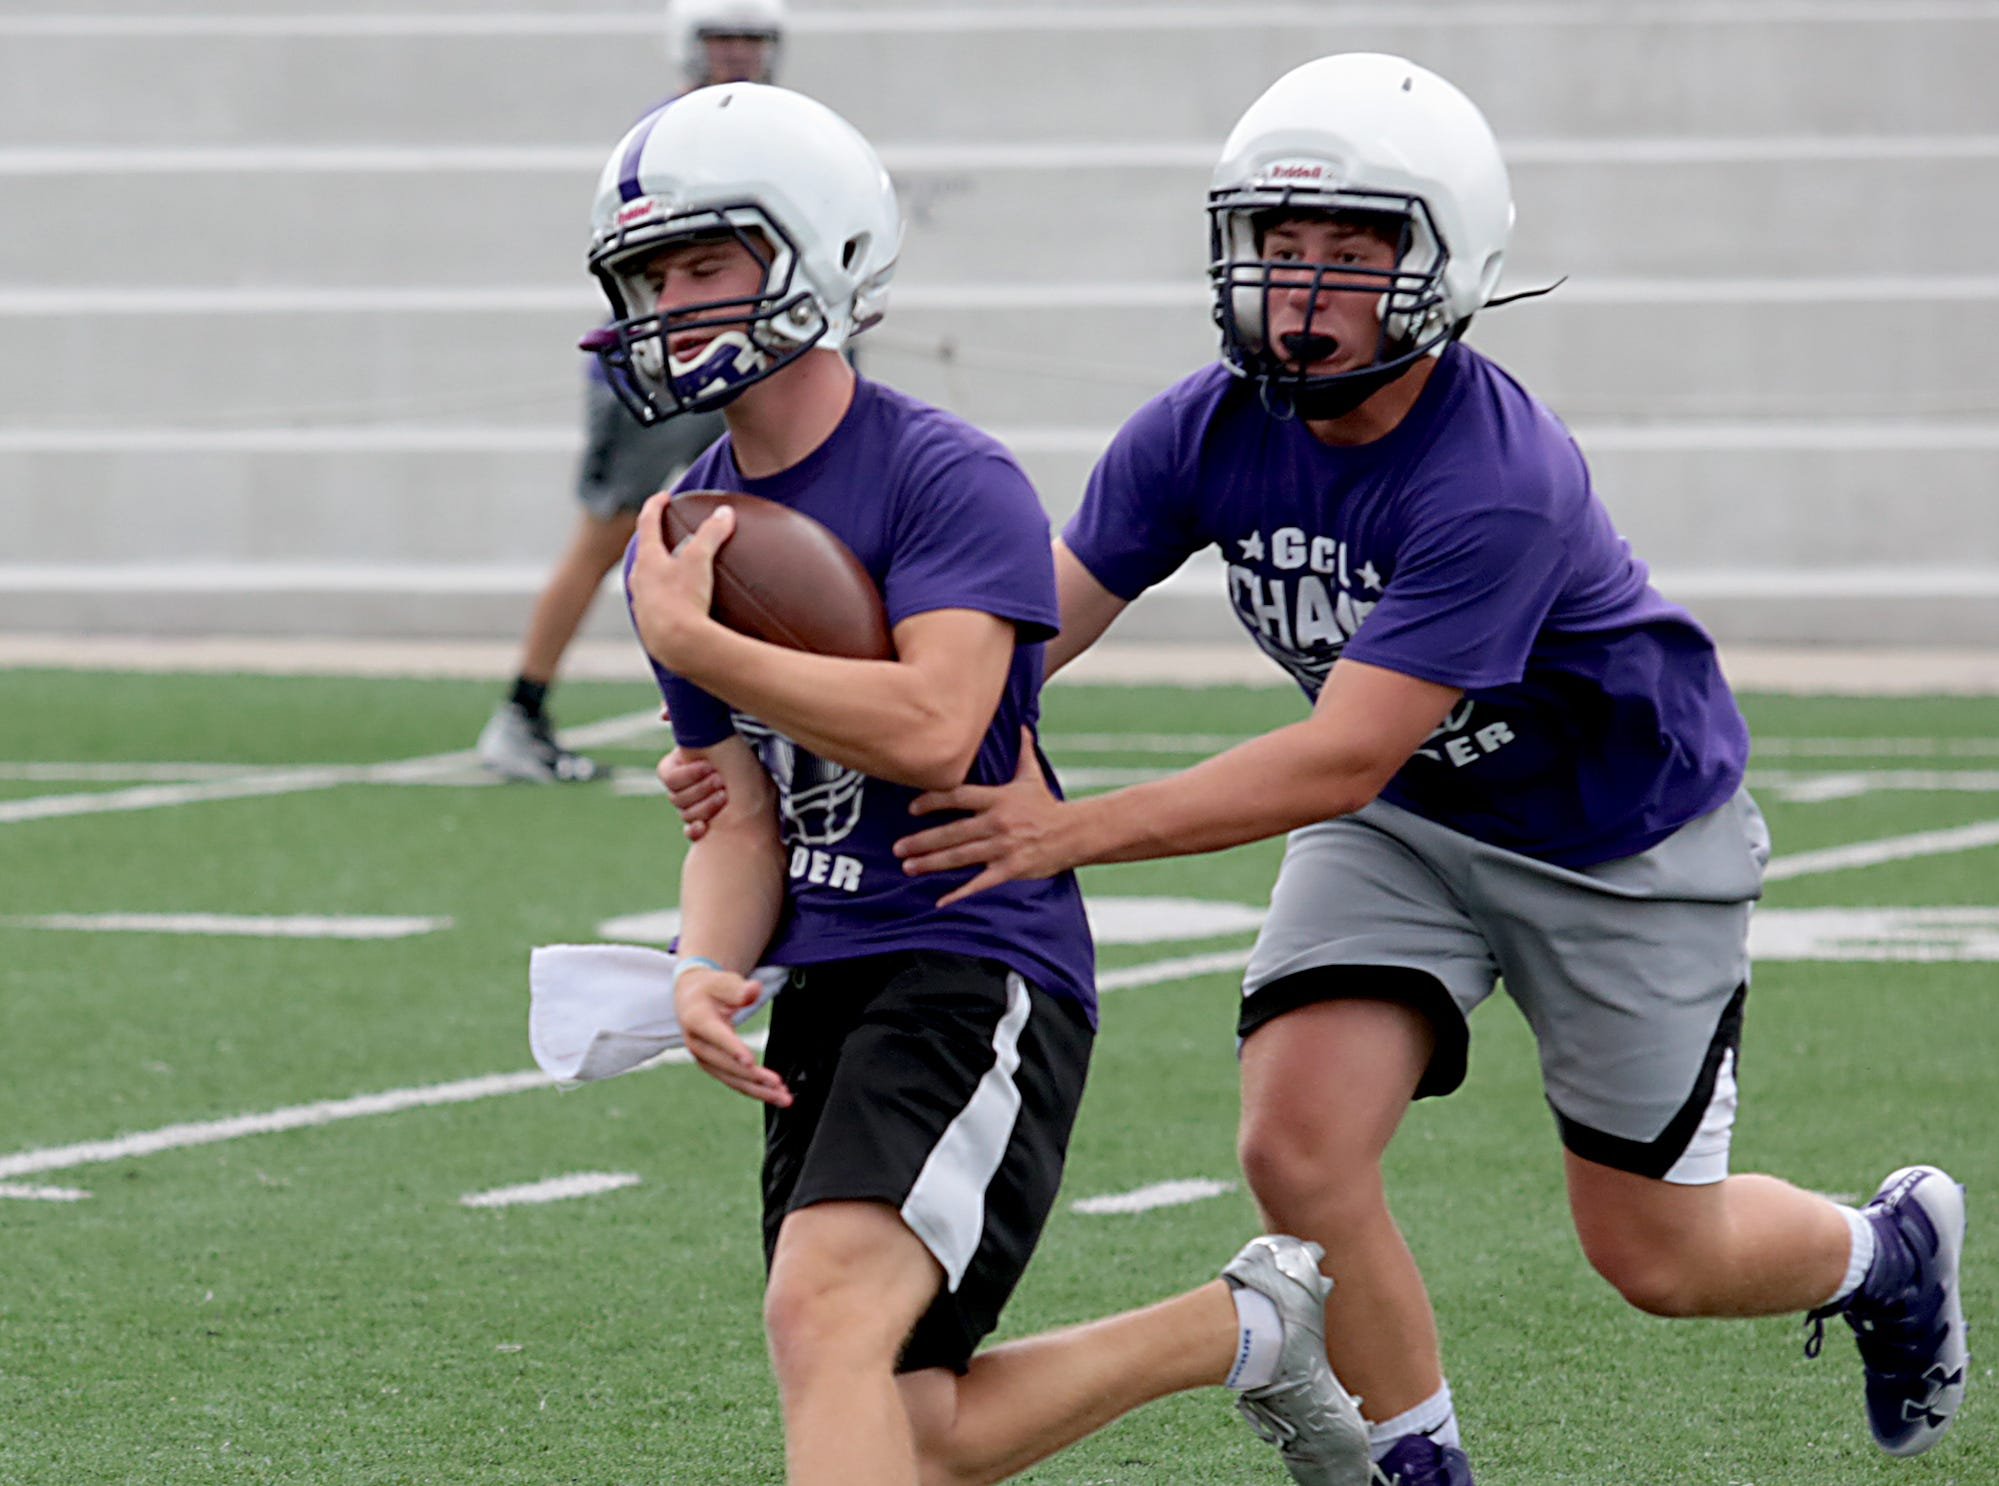 Matthew Luebbe tries to escape a teammate's tackle during practice Tuesday, July 31, 2018.